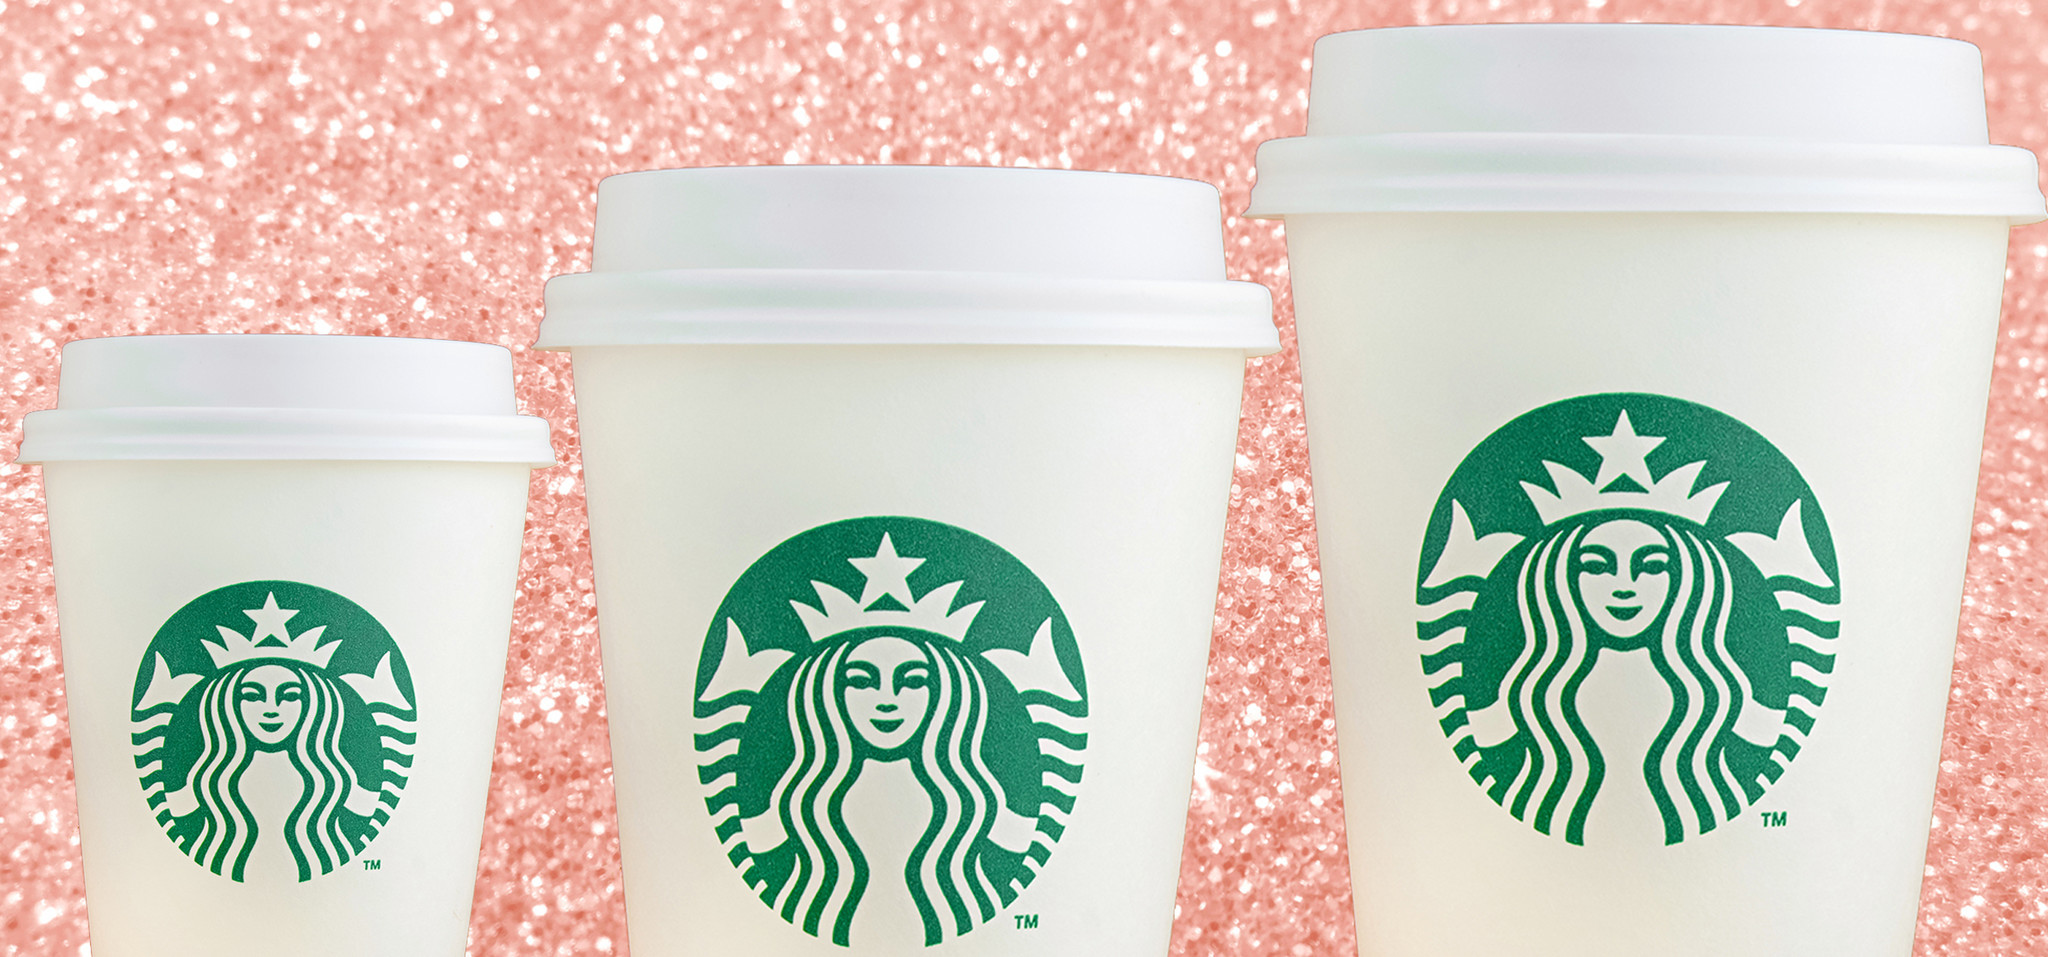 Rose Pretty Gold Tumblers So Starbucks They're Exists And AL3qc4j5RS